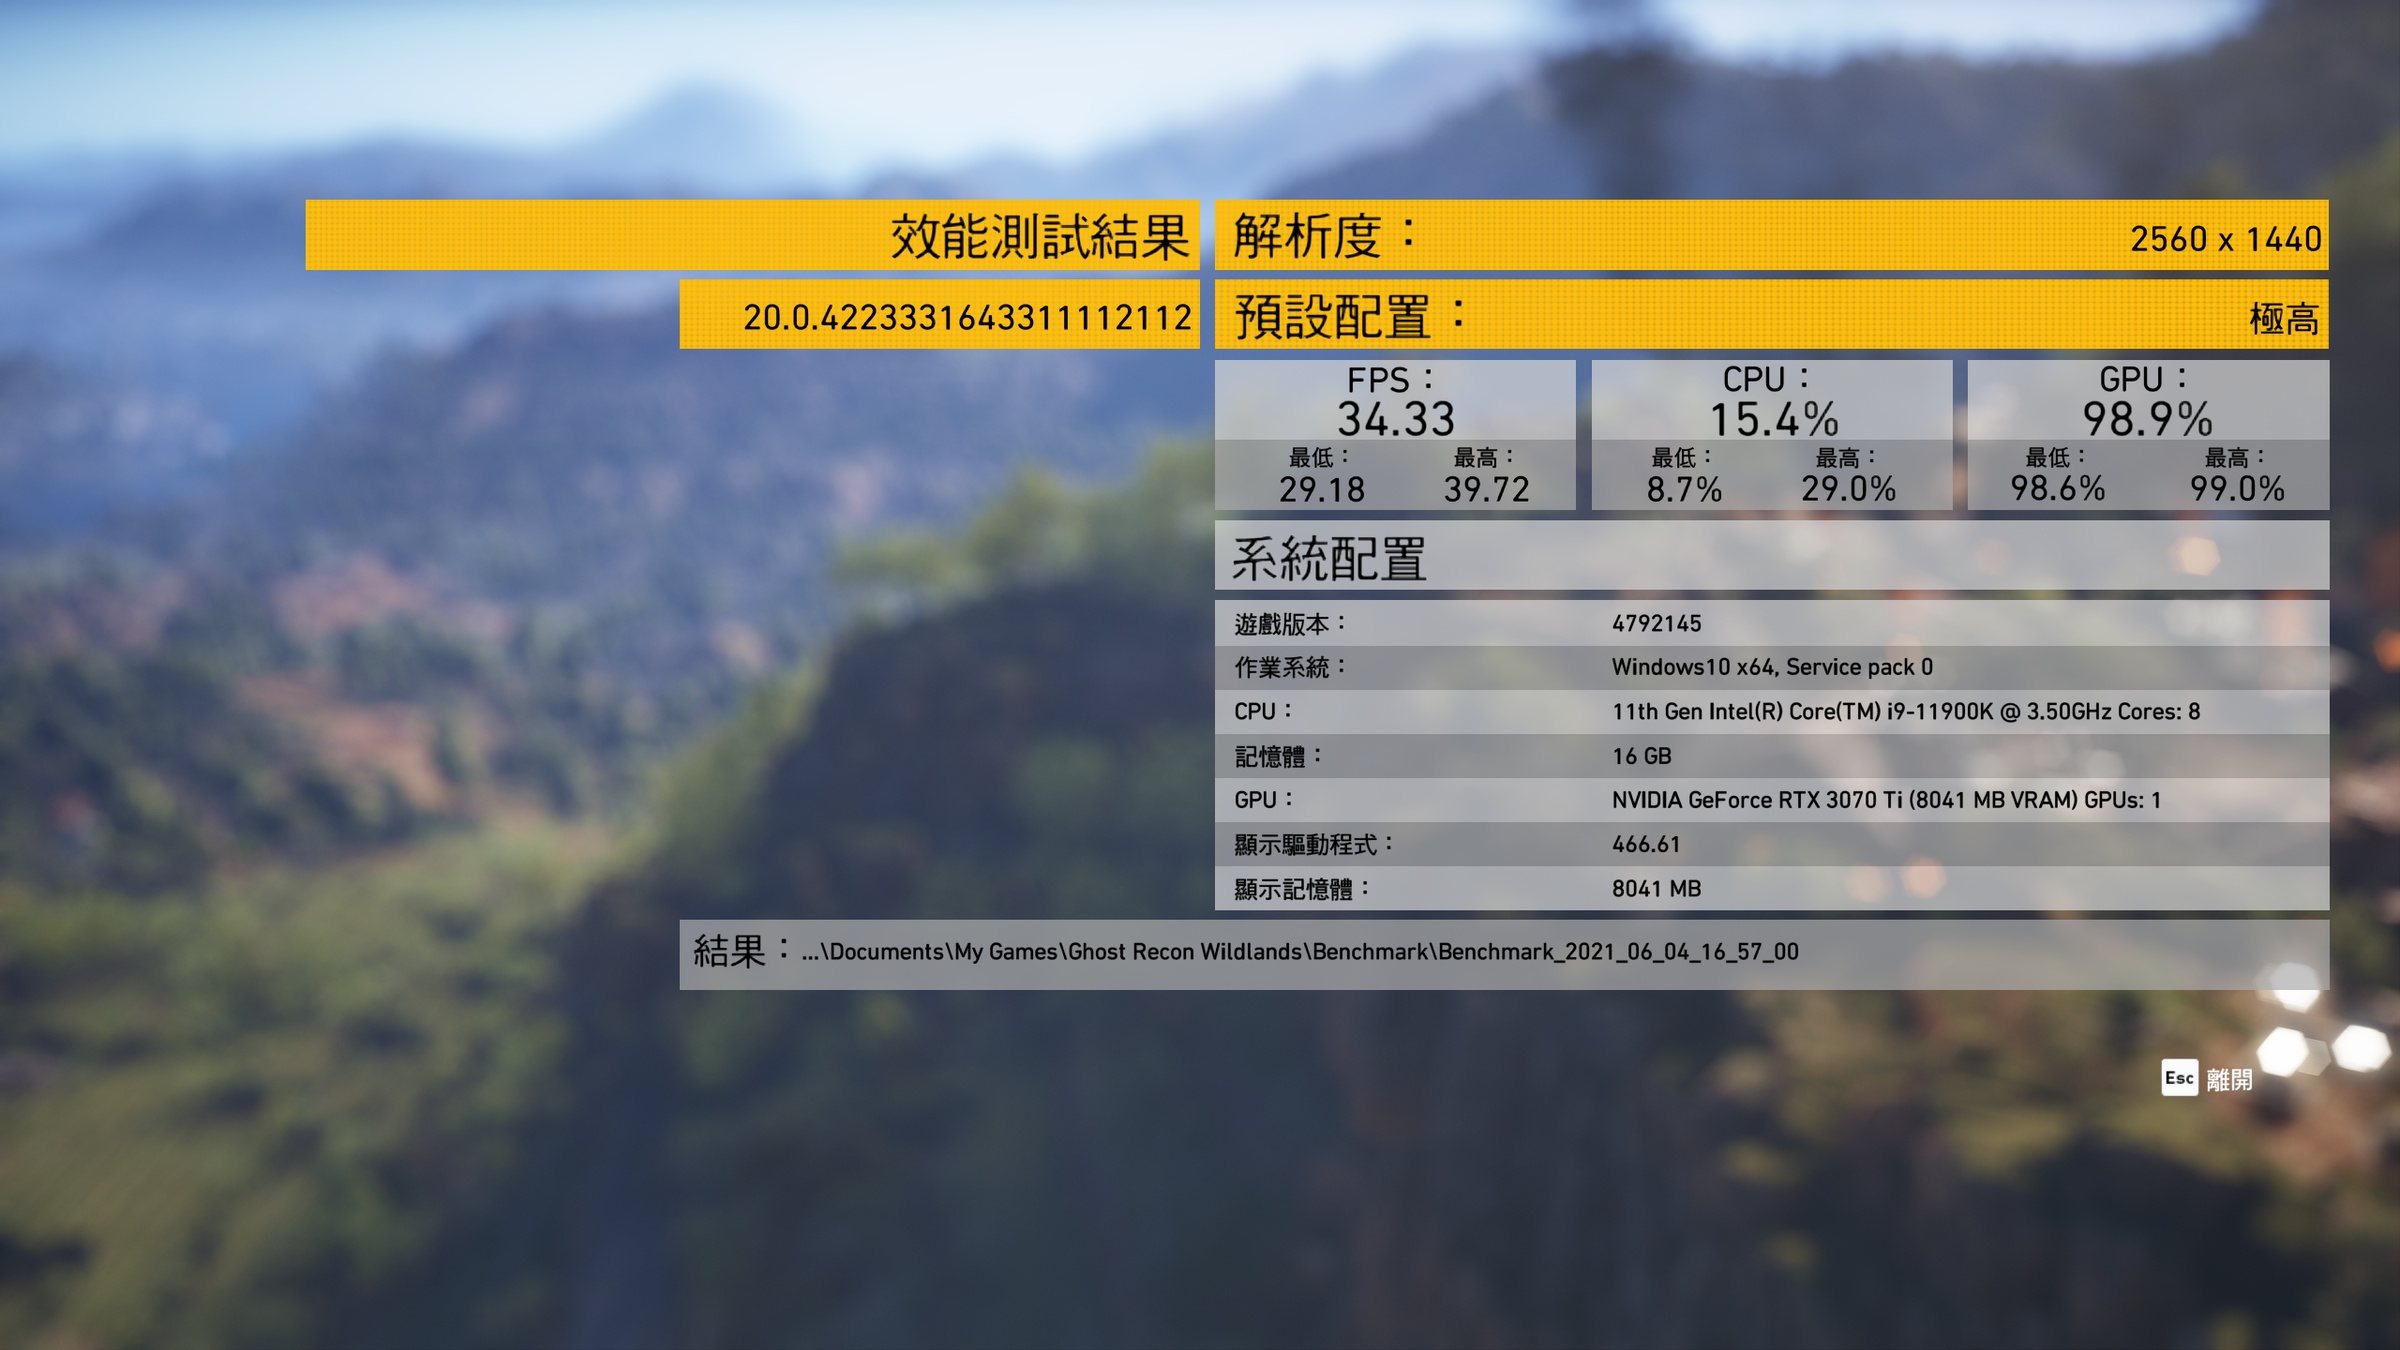 The performance test results are mentioned in the photo. Resolution: 2560 x 1440, 20.0.4223331643311112112. The default configuration: includes Tom Clancy's Ghost Recon Wilderness, Tom Clancy's Ghost Recon Wilderness, and Tom Clancy's Ghost Recon , Tom Clancy's Ghost Recon: Soldier of the Future, PlayStation 4